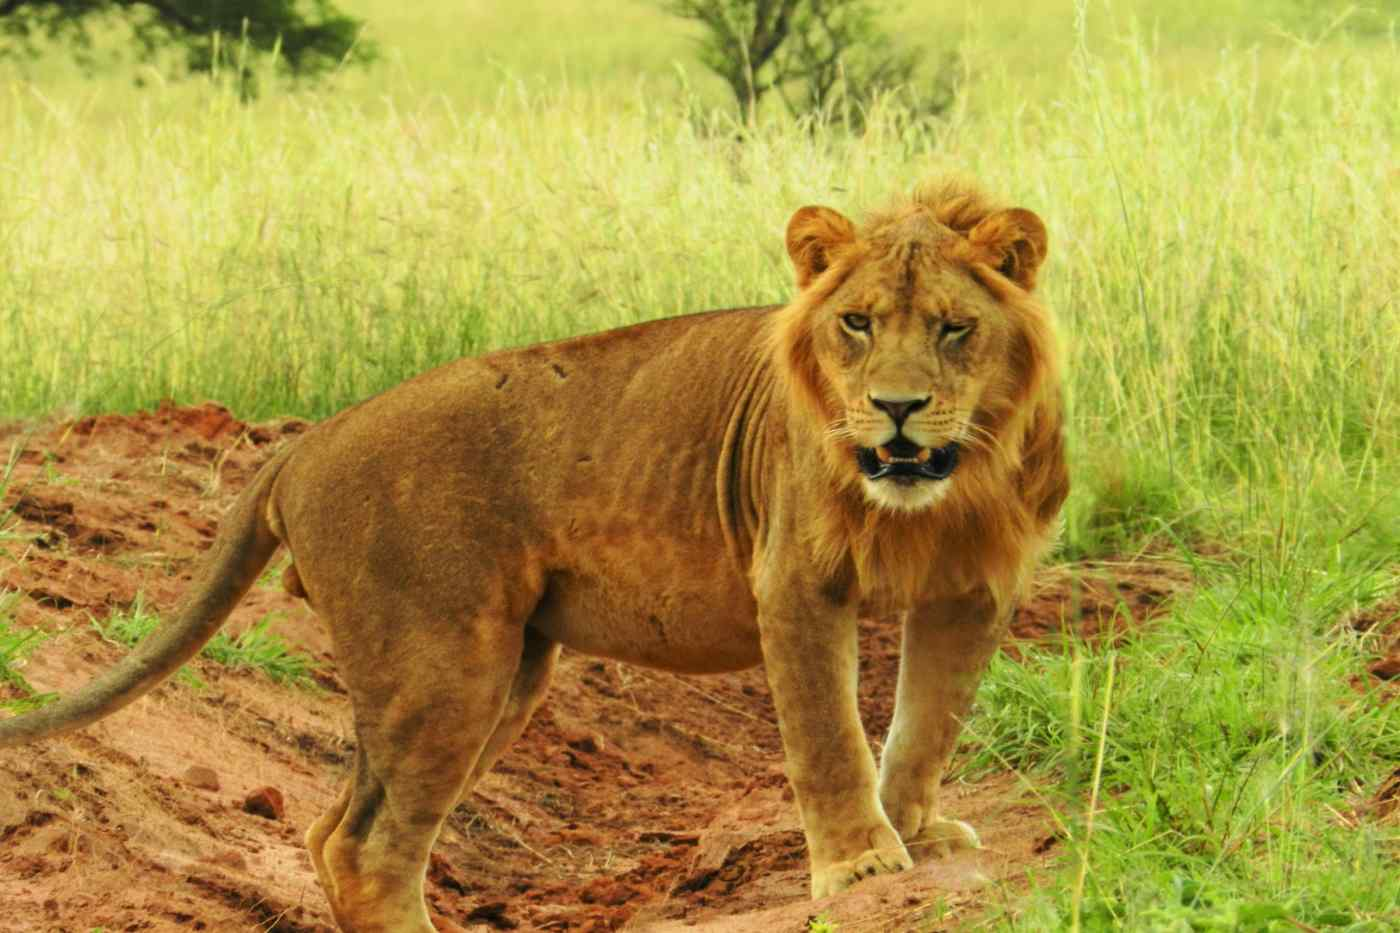 Queen Elizabeth National Park, Uganda